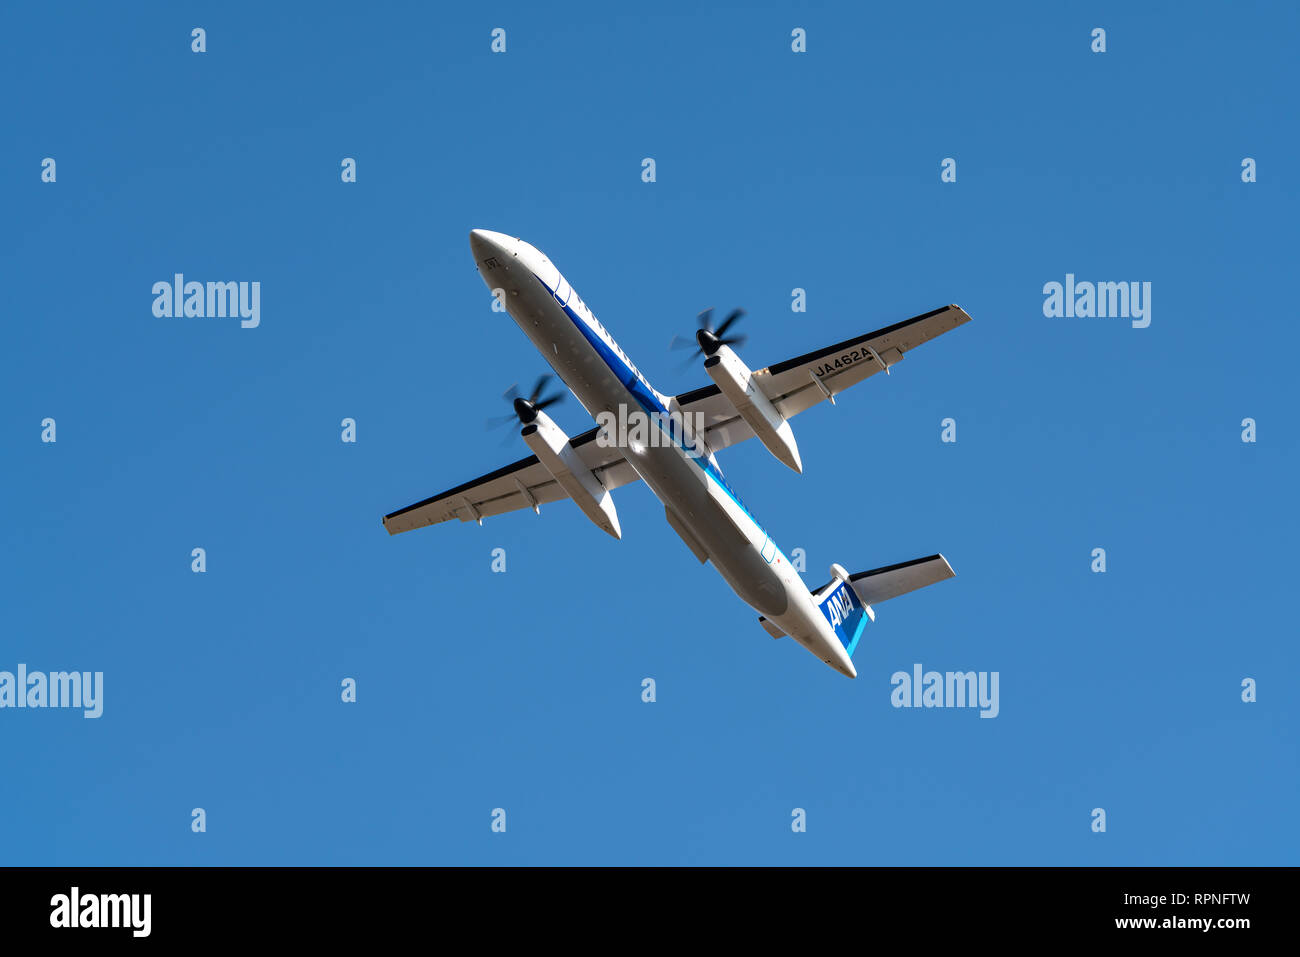 OSAKA, JAPAN - JAN. 1, 2019: ANA Wings Bombardier DHC-8-400Q Dash 8 taking off from the Itami International Airport in Osaka, Japan. - Stock Image